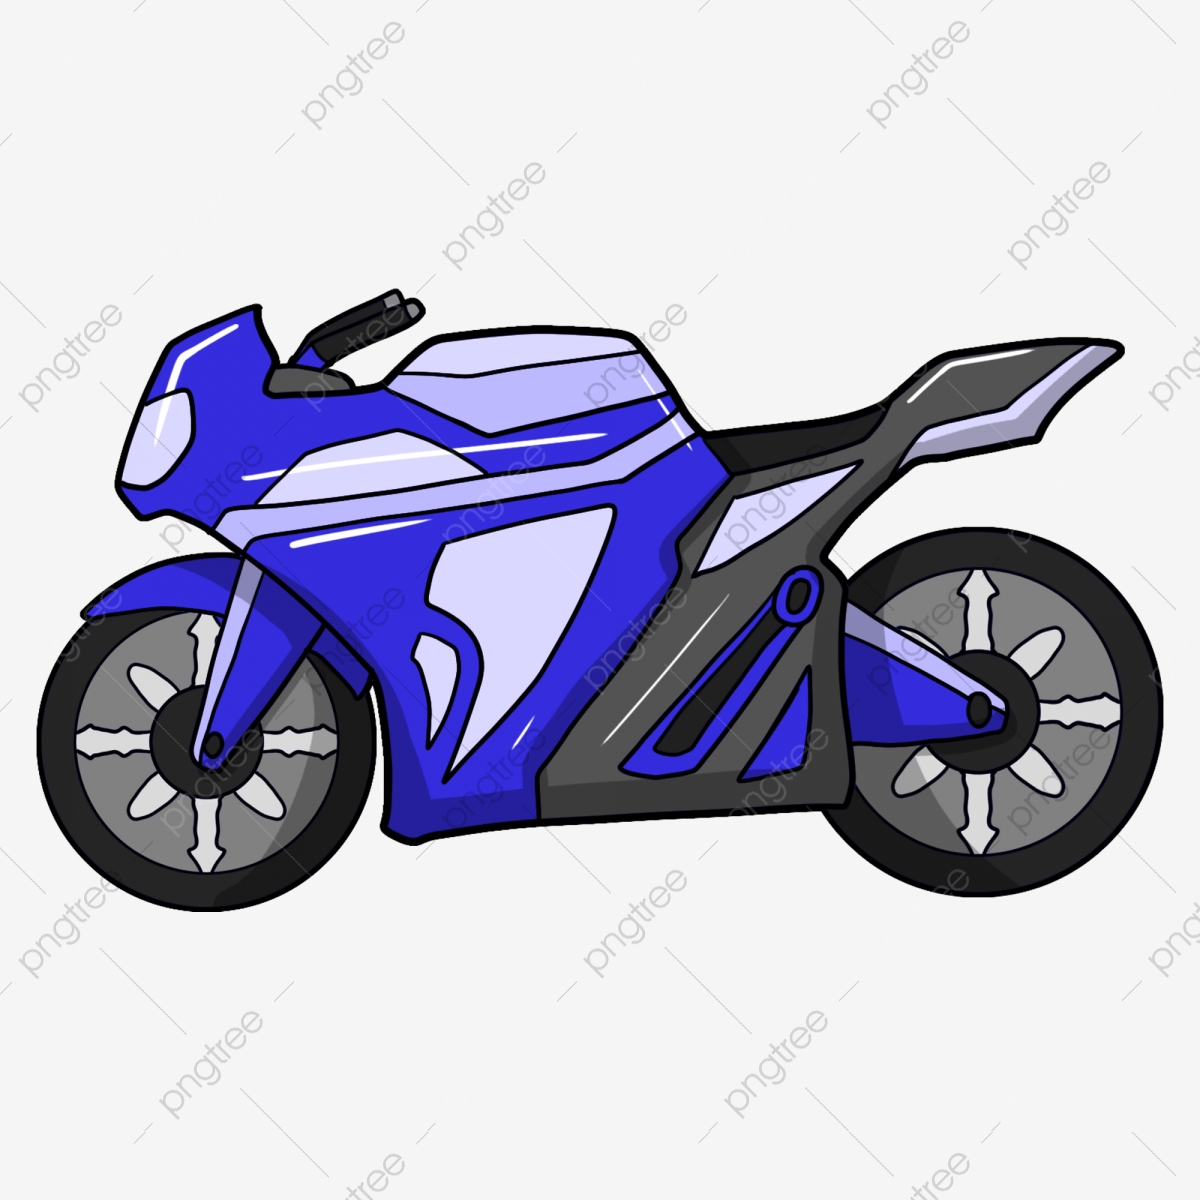 Vintage old . Motorcycle clipart cool motorcycle